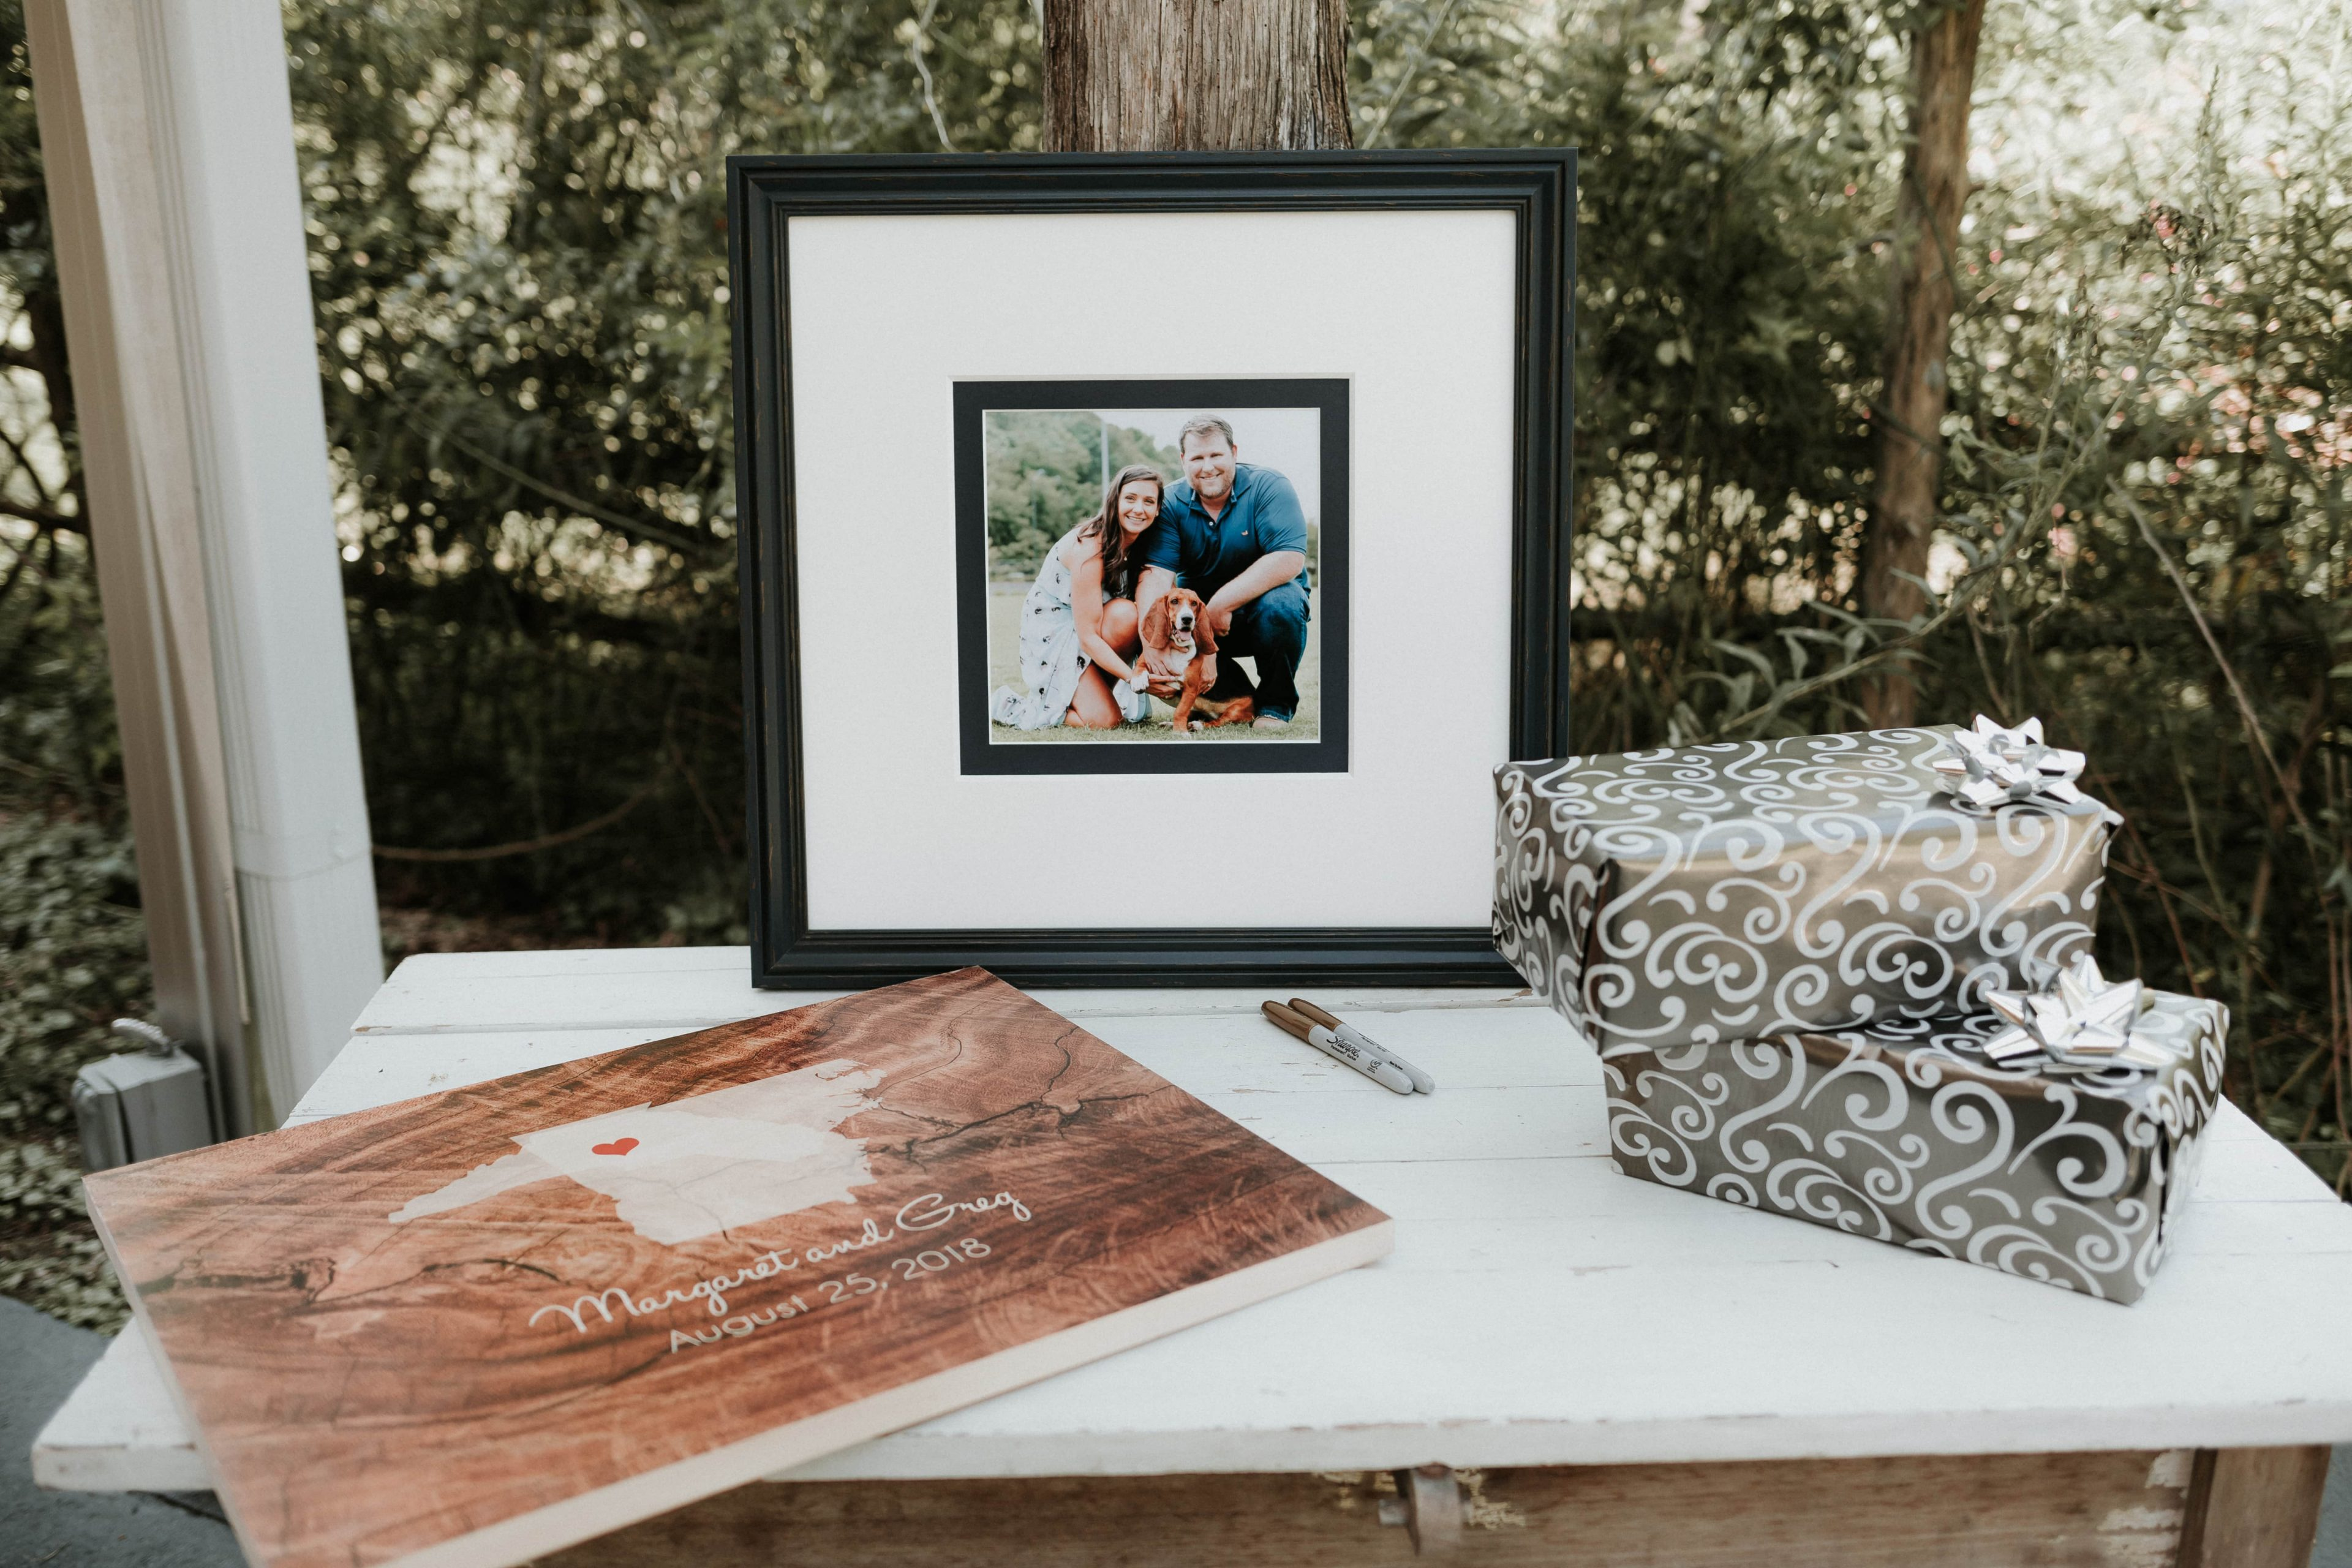 Couples guest book included a farmed photo mat and state board to be signed by guest at an Ivy Place Wedding designed by Magnificent Moments Weddings